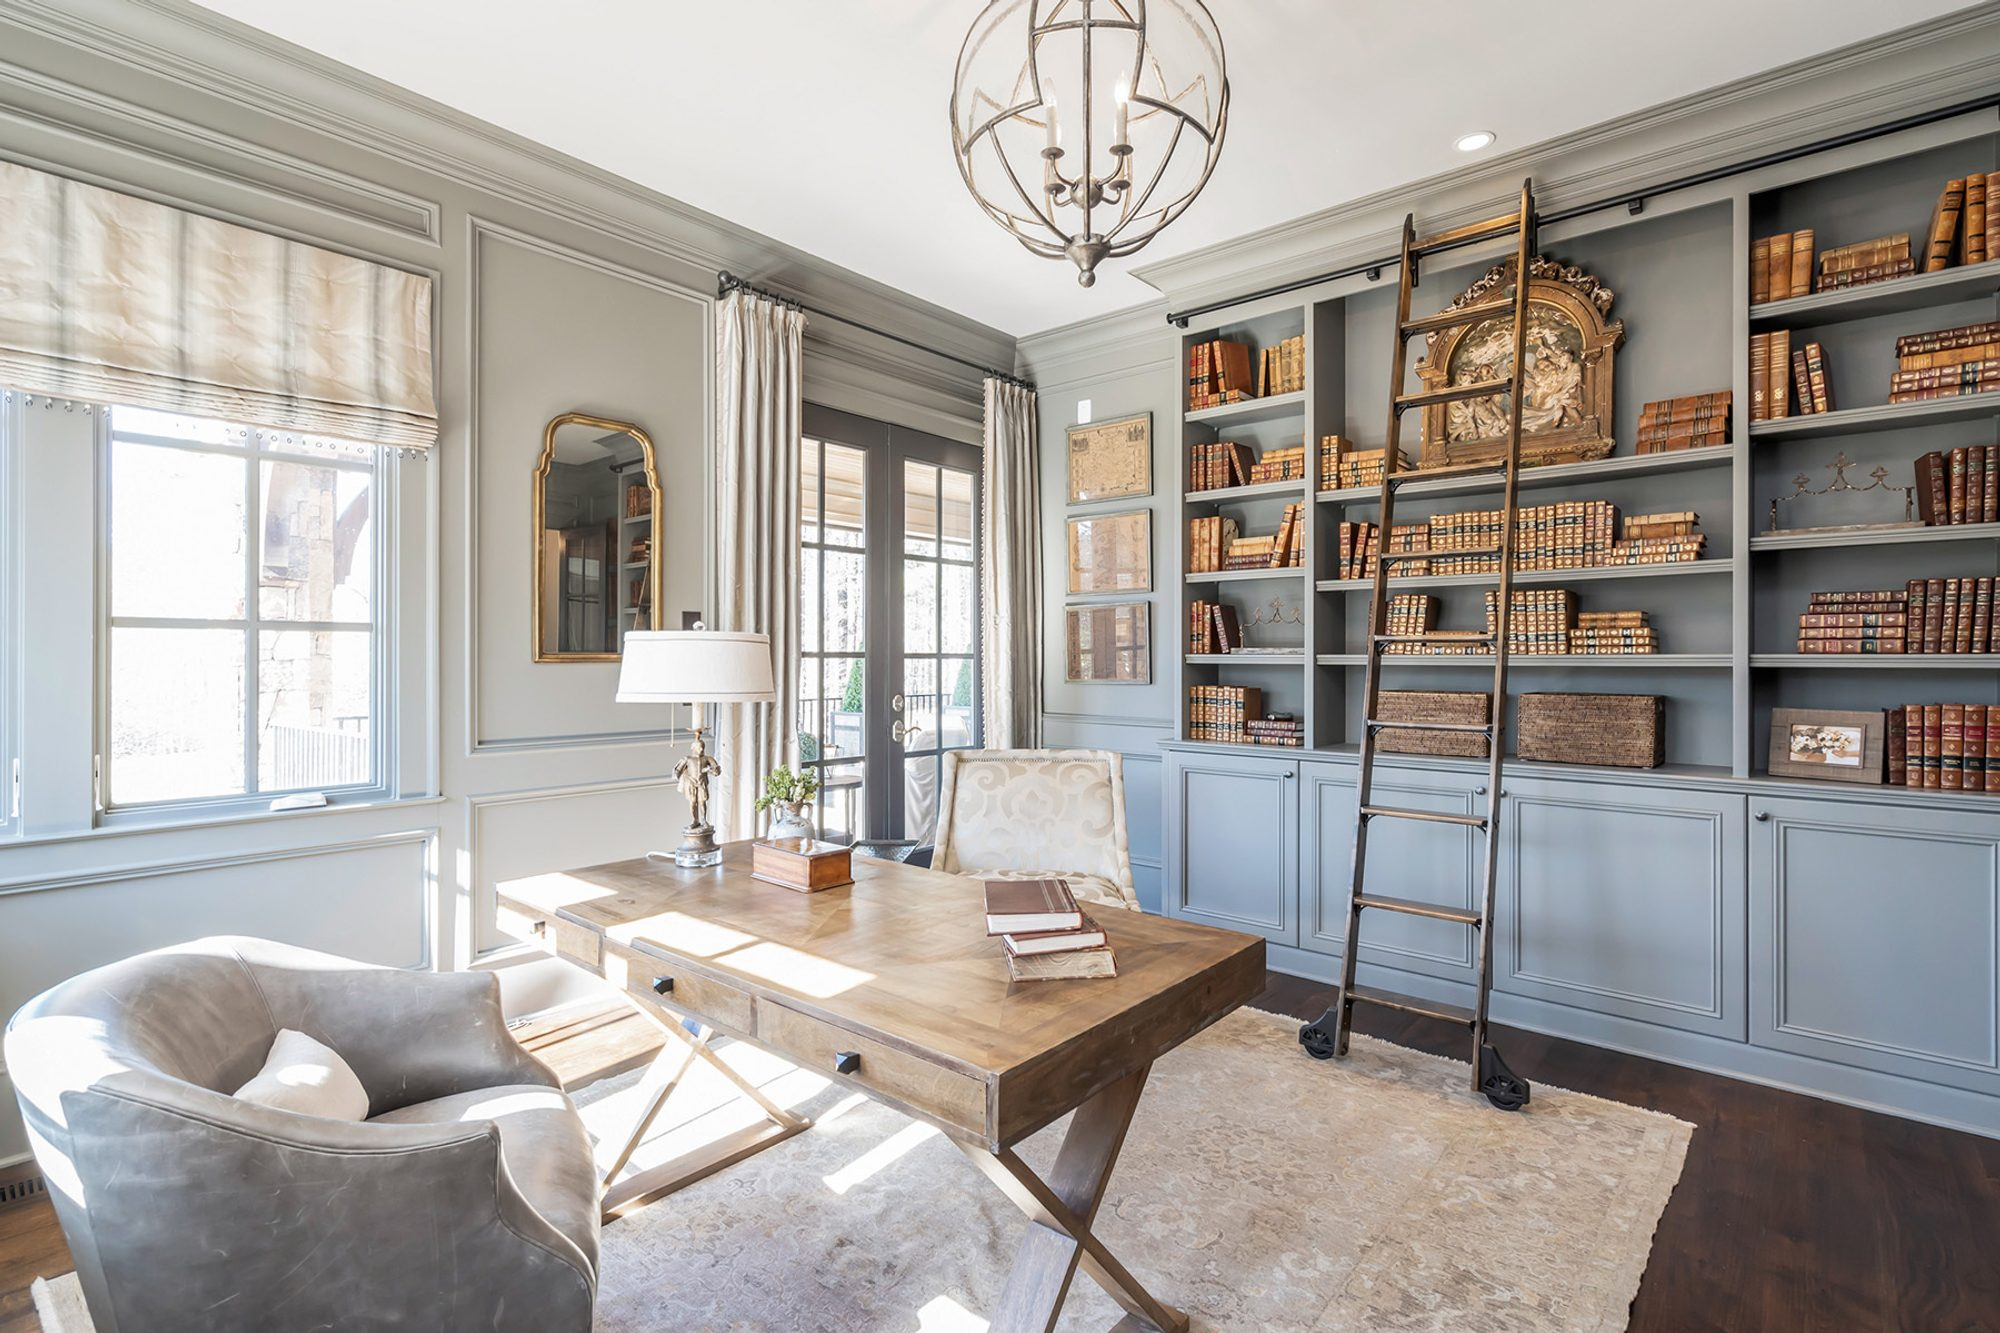 light gray monochromatic color scheme office with built ins cabinets and shelving dark wood floors, rug, light wood desk